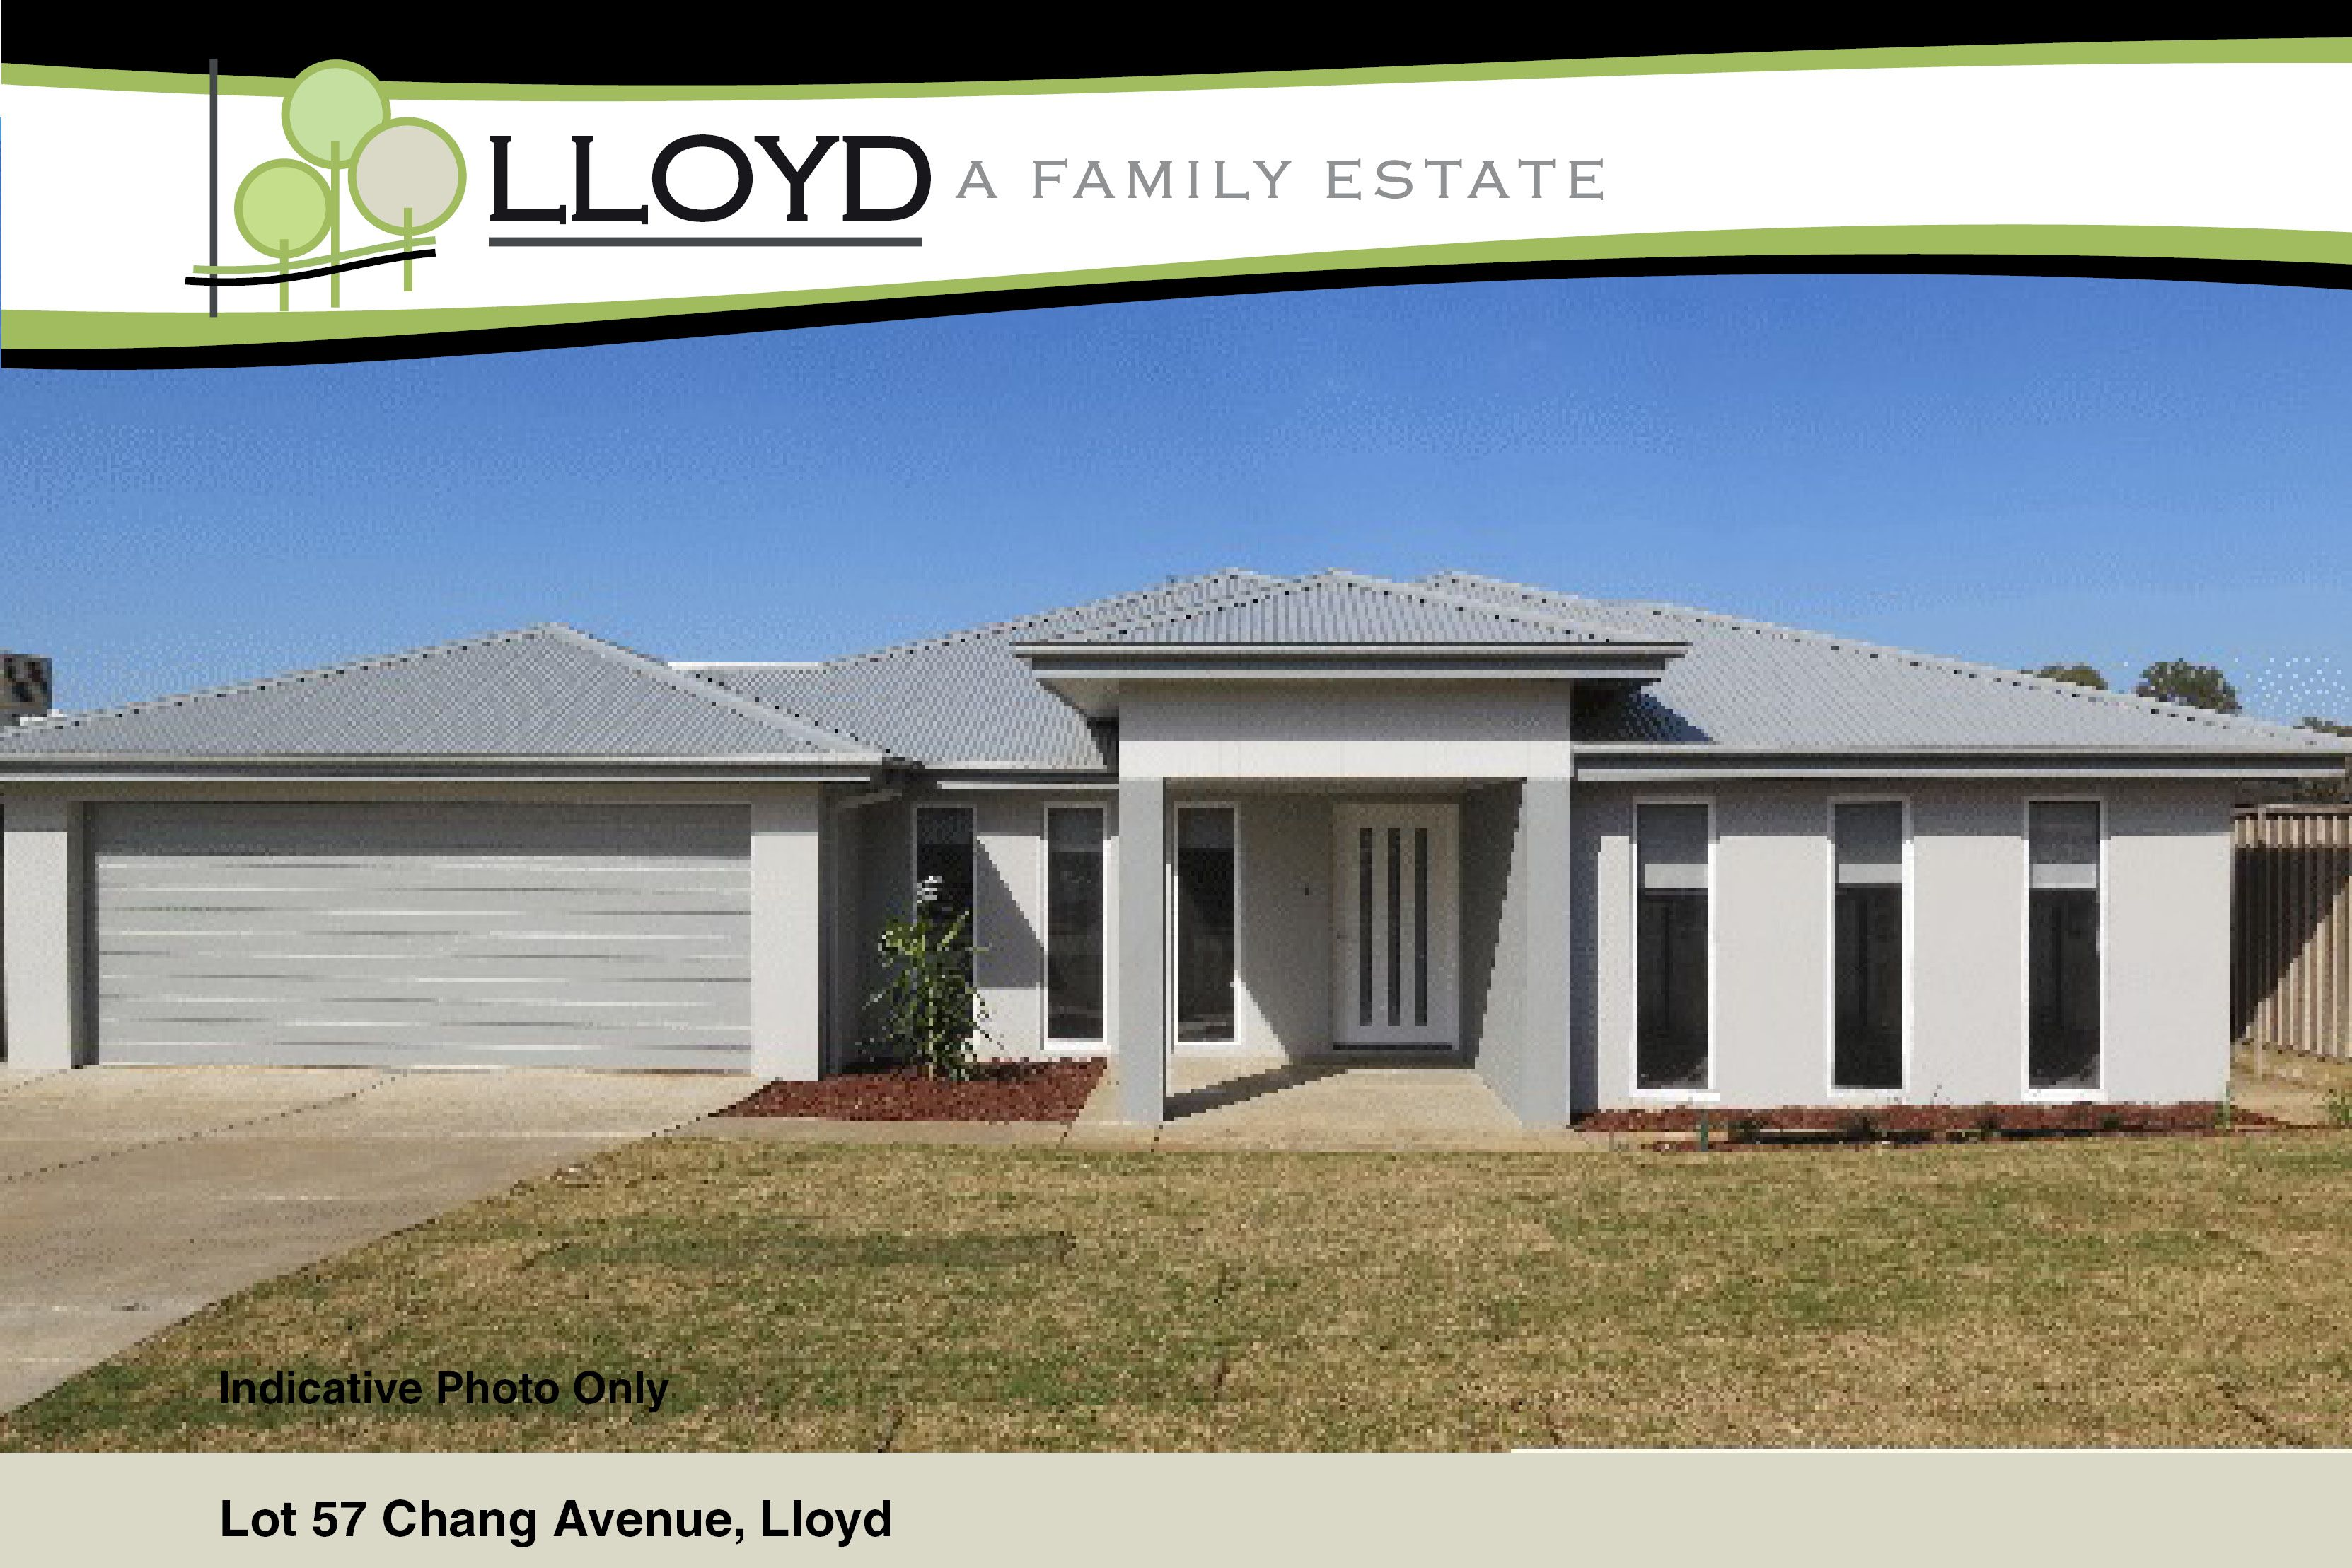 Lot 57 Chang Avenue, Lloyd